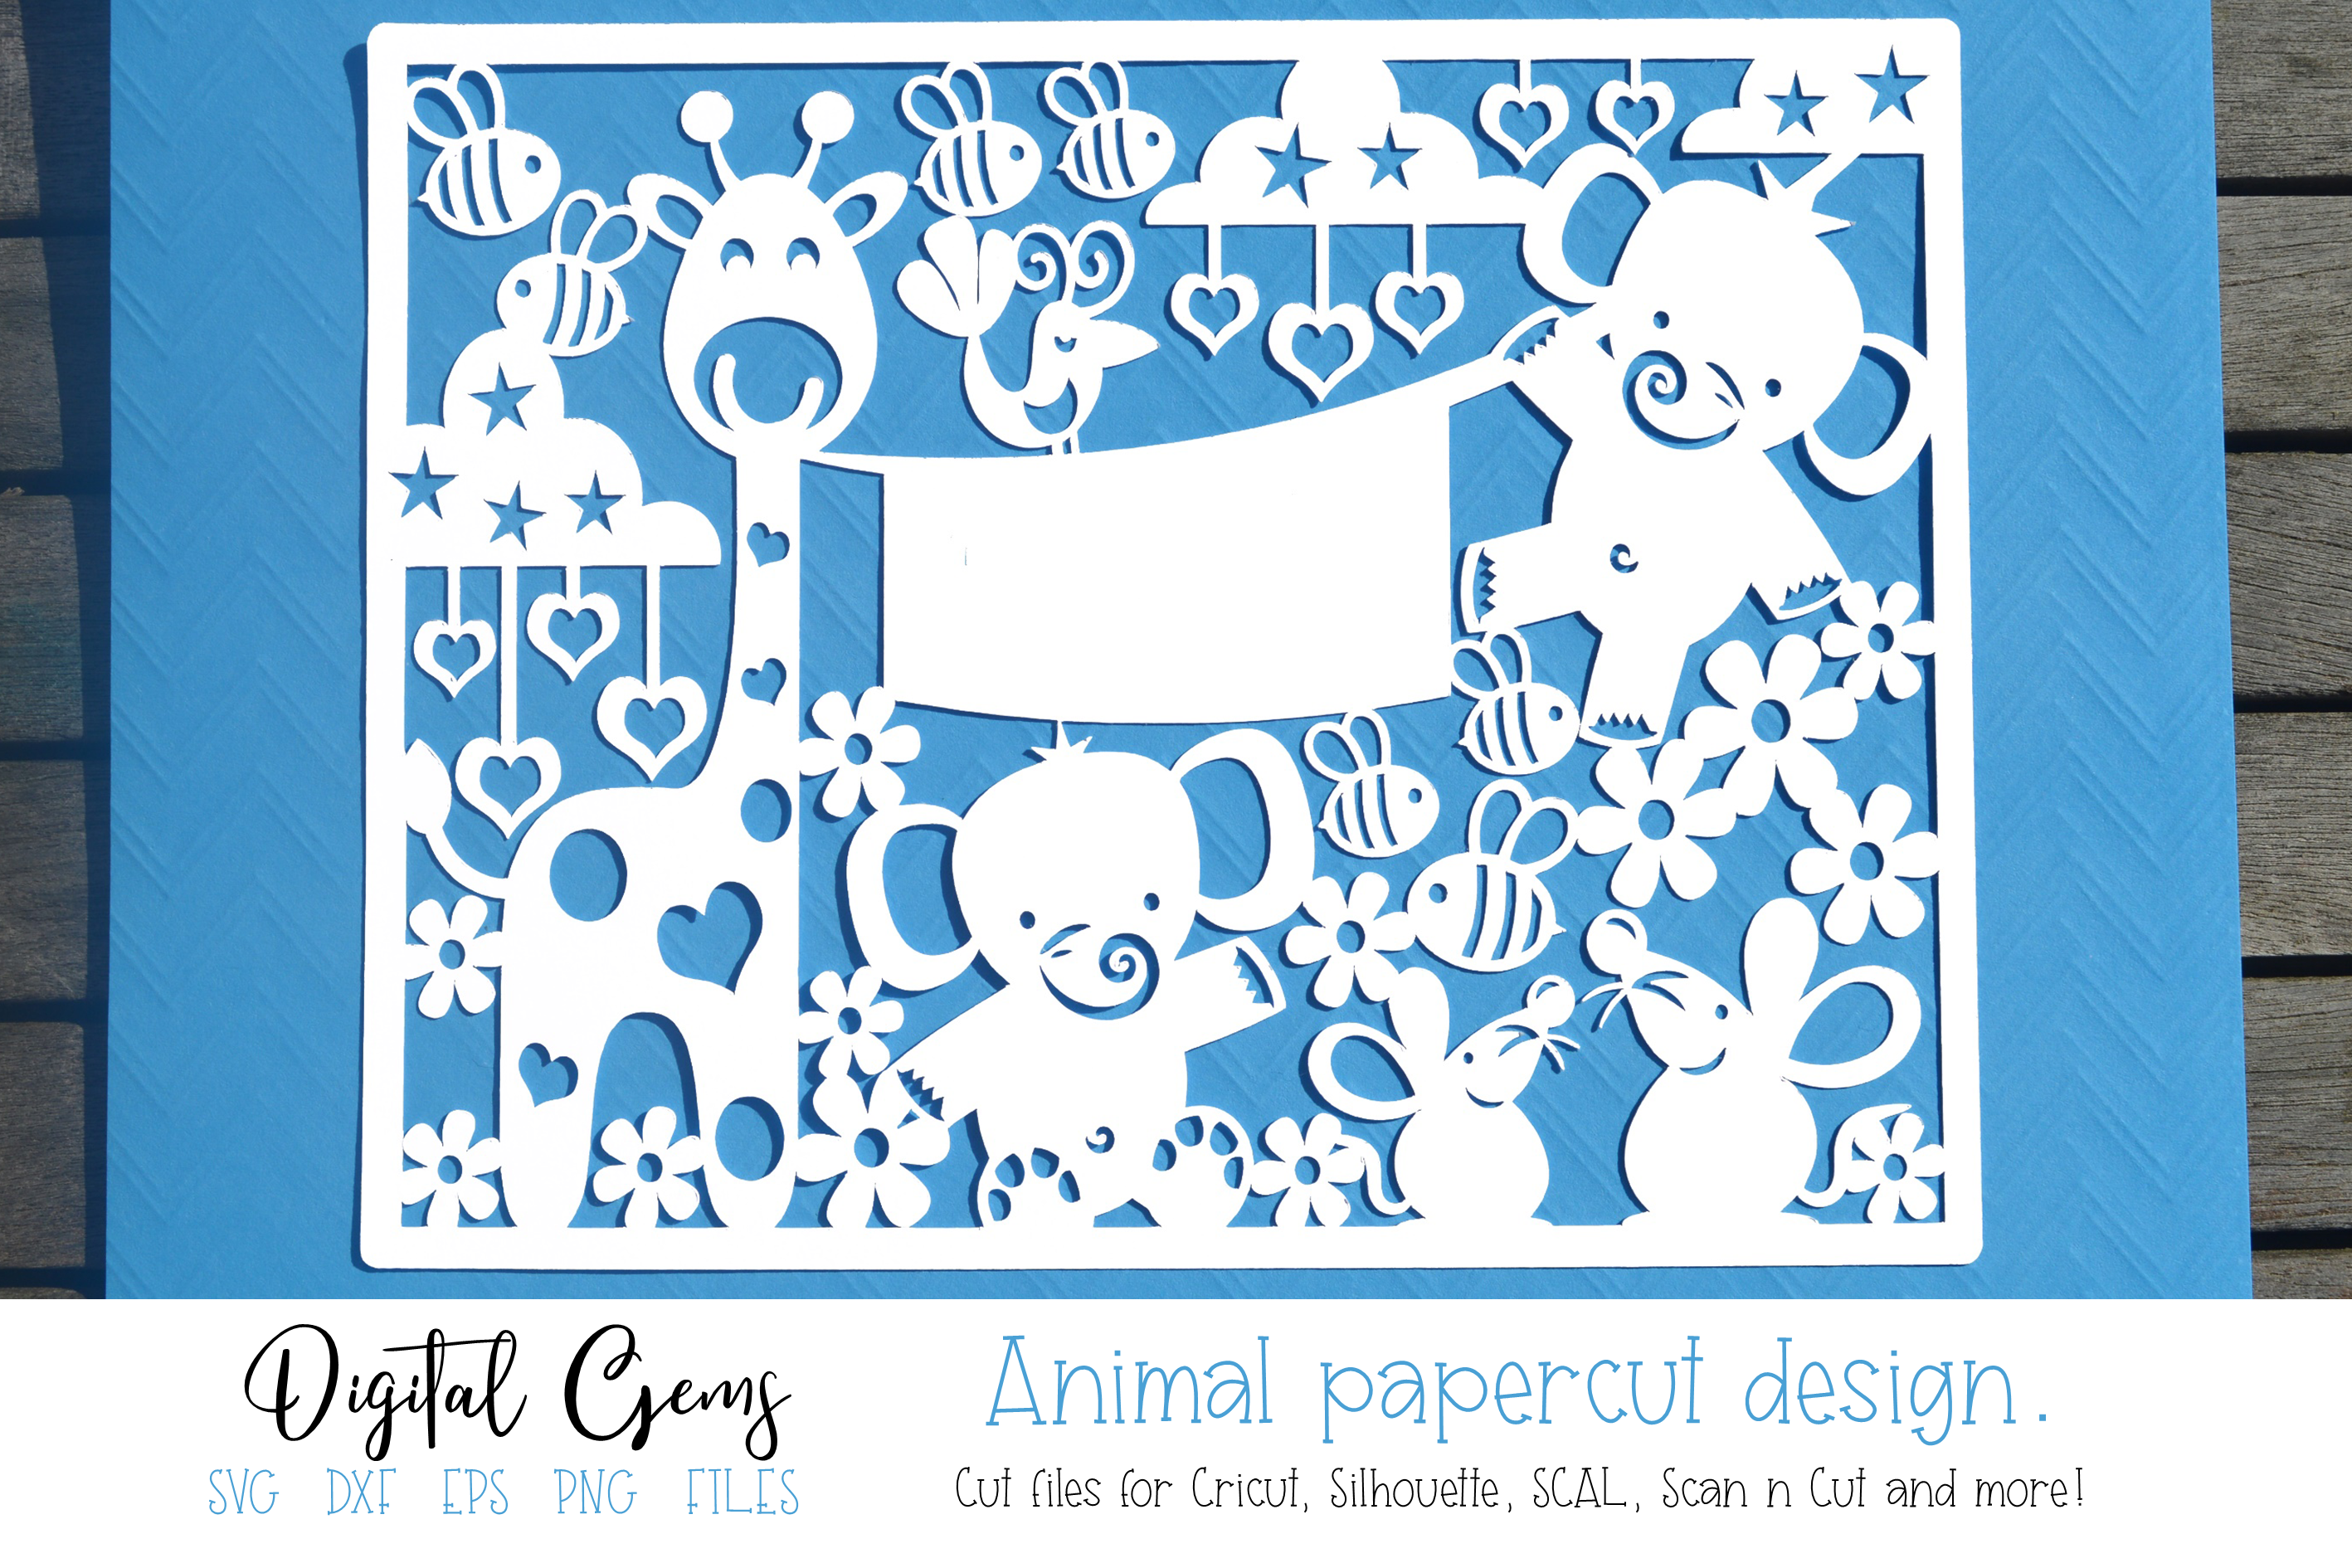 New Baby Animal Papercut Design Graphic By Digital Gems